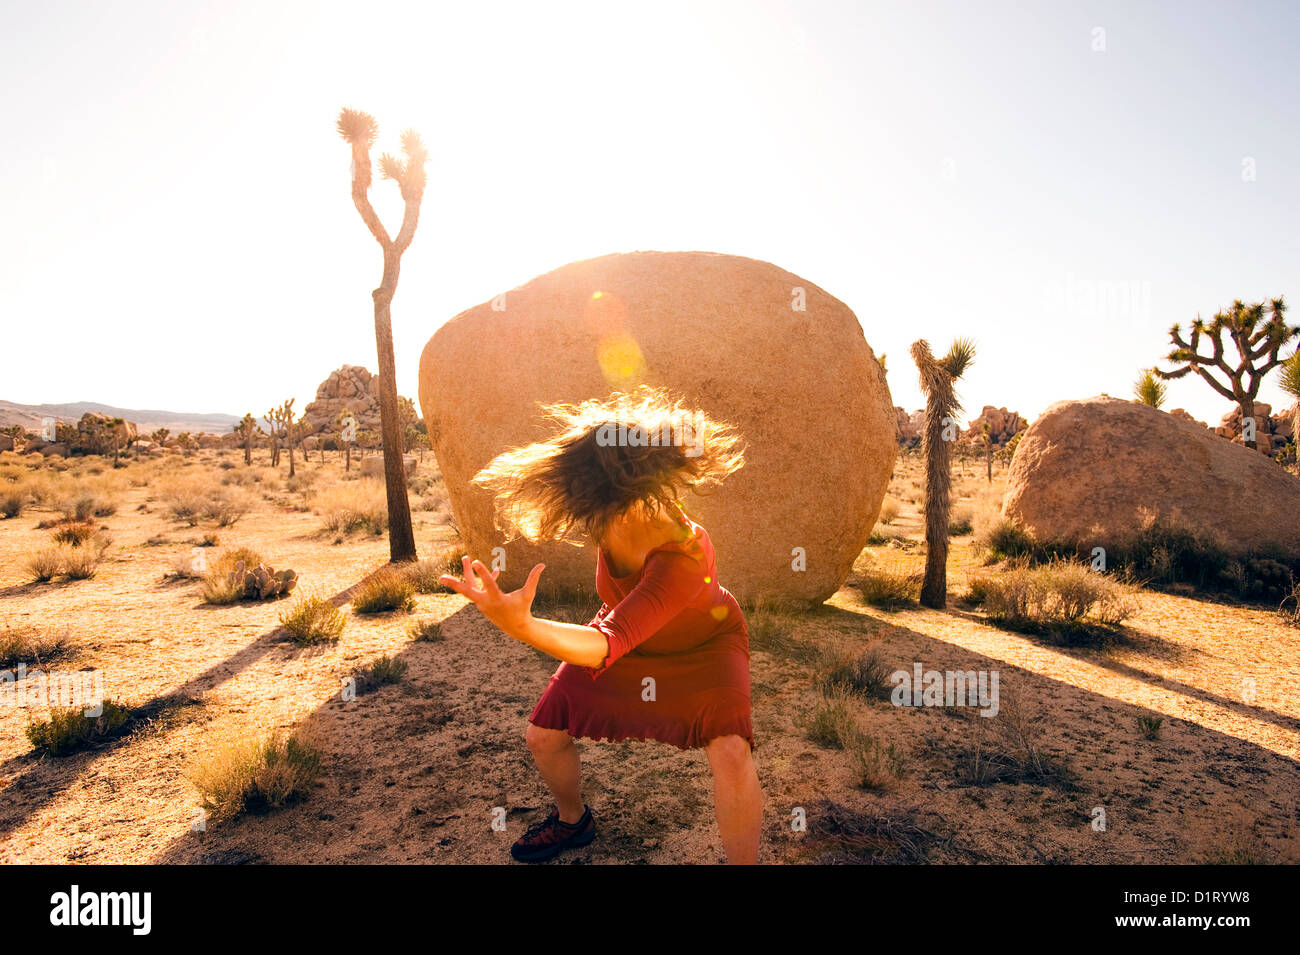 Intense wild woman dancing in the desert. - Stock Image